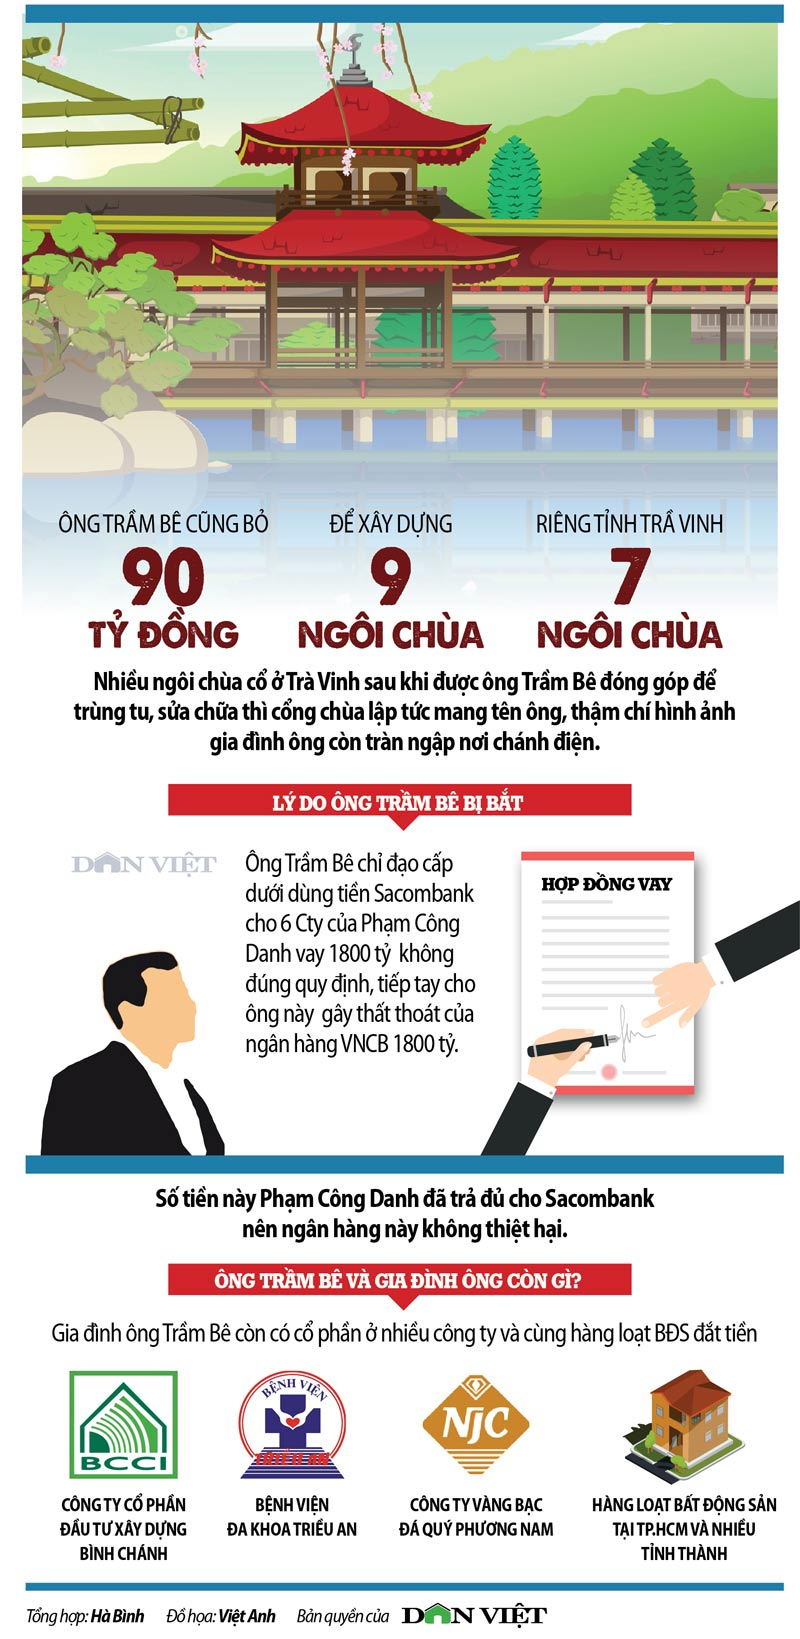 infographic: tram be no tuong duong 900.000 can nha tinh nghia! hinh anh 4